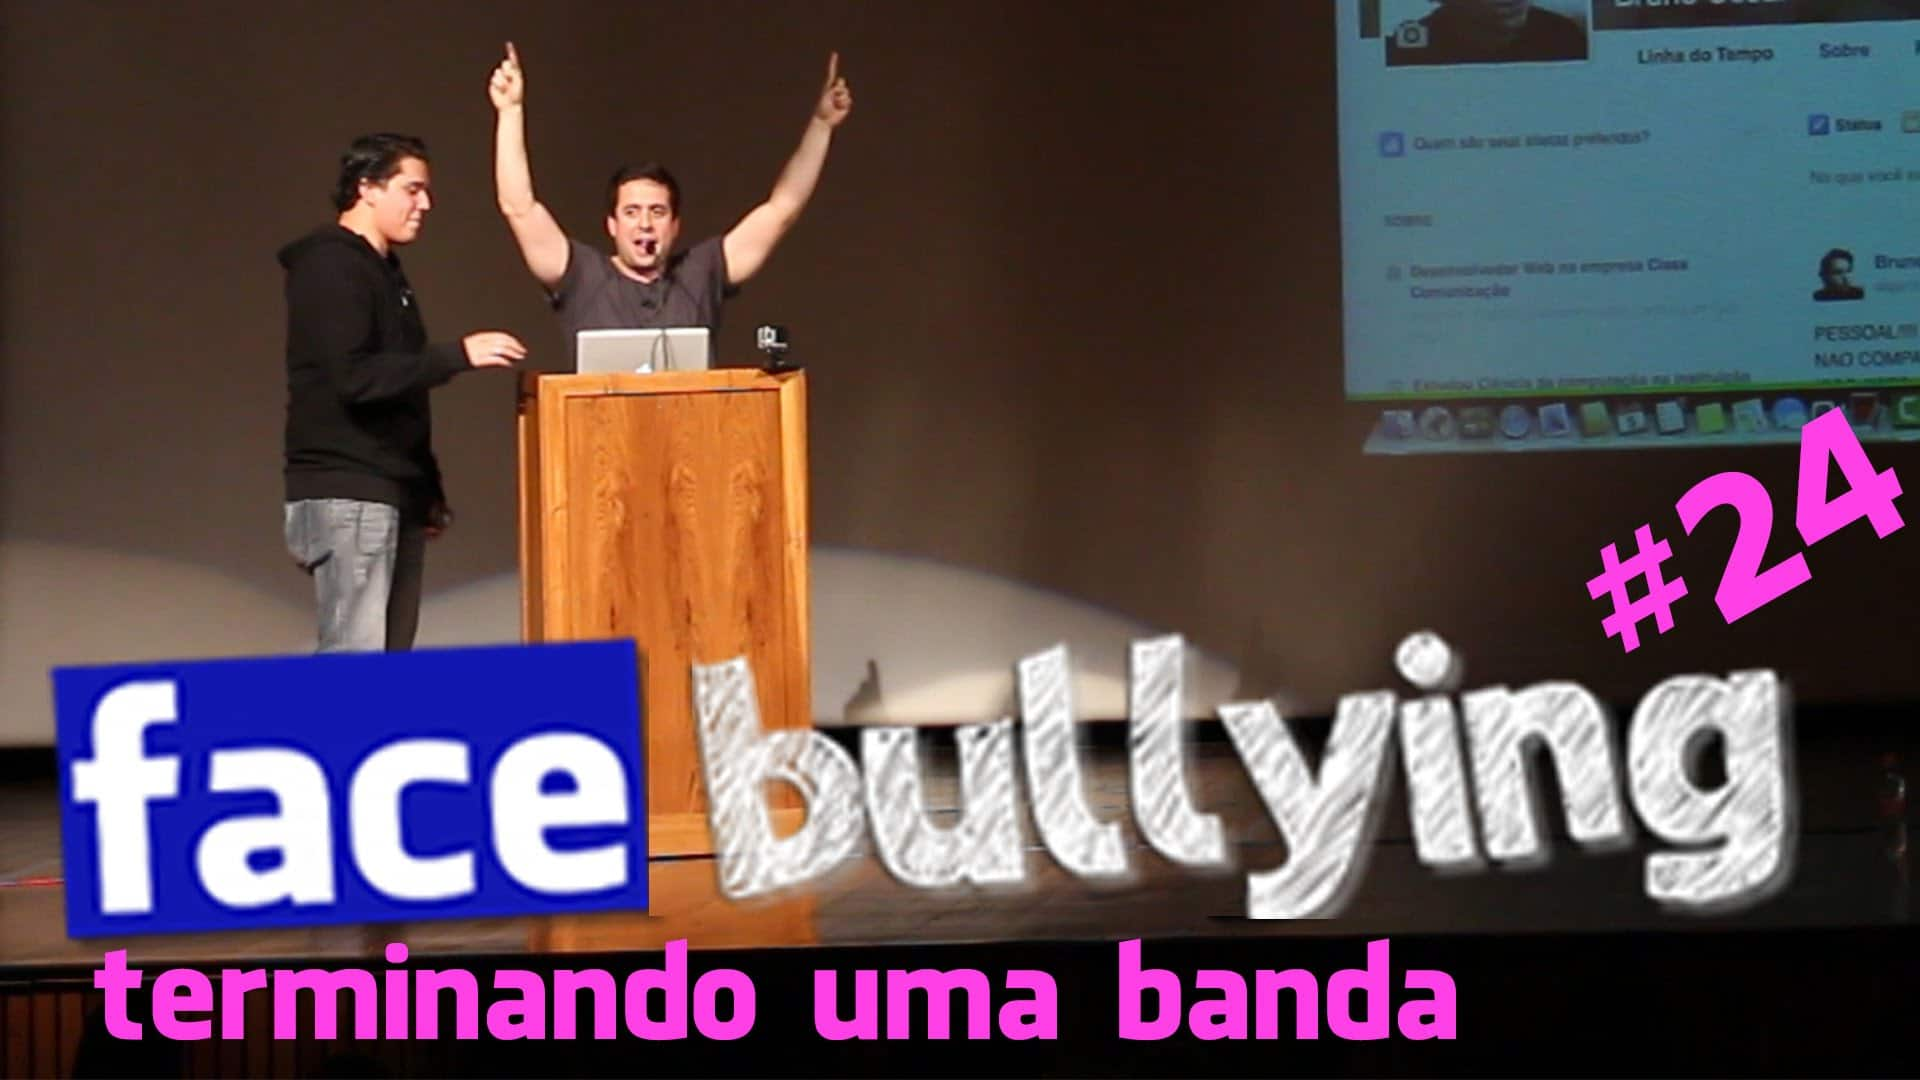 Facebullying – Terminando uma banda - facebullying terminando uma banda blog tediado